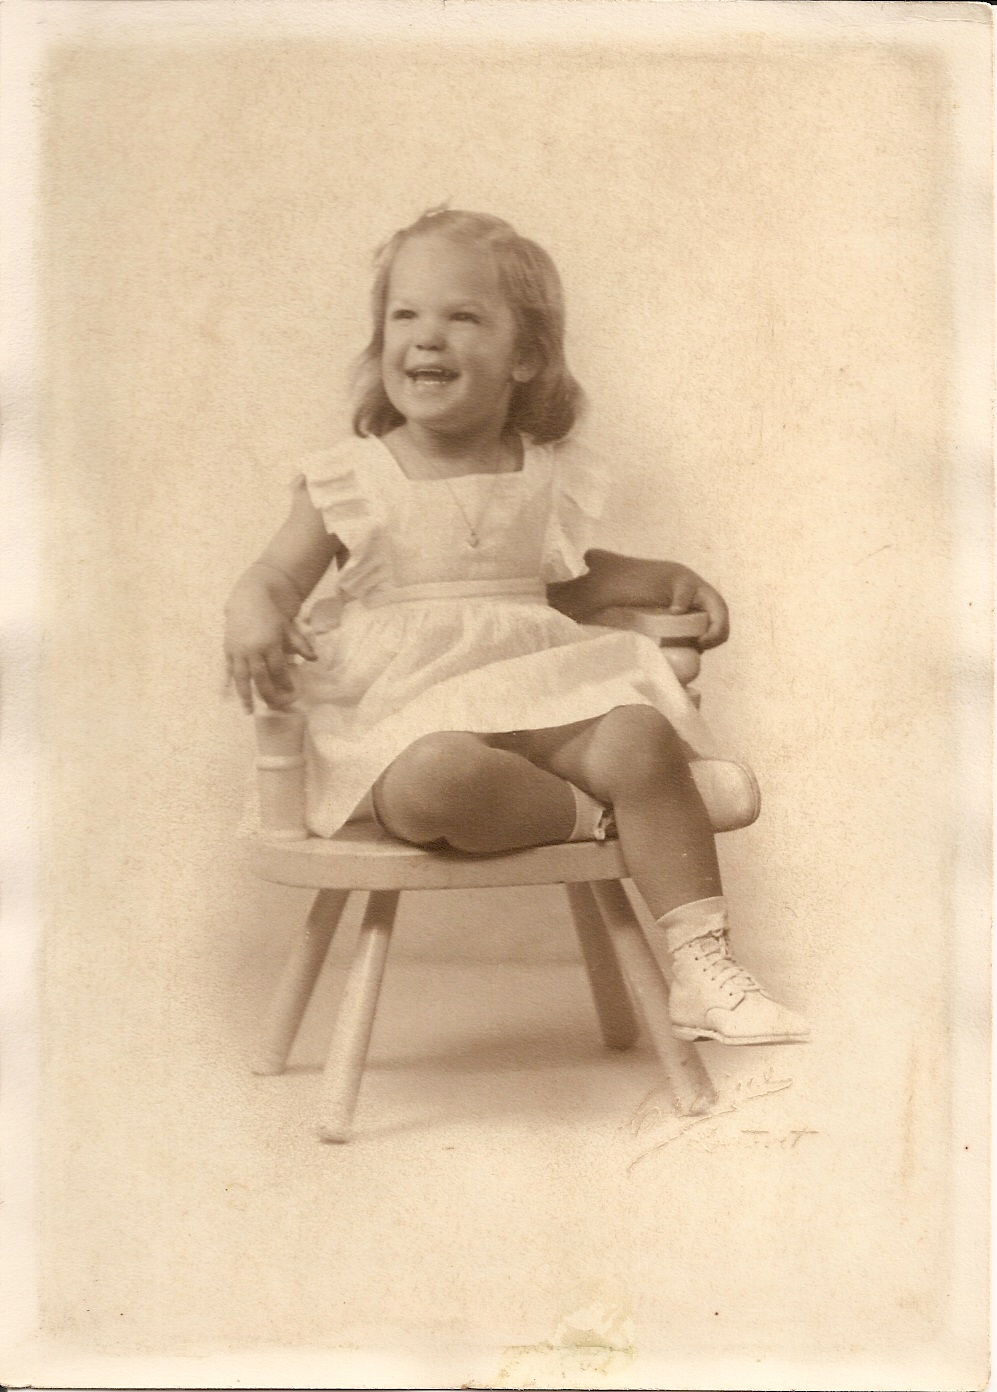 Carolaine about 3 yrs old